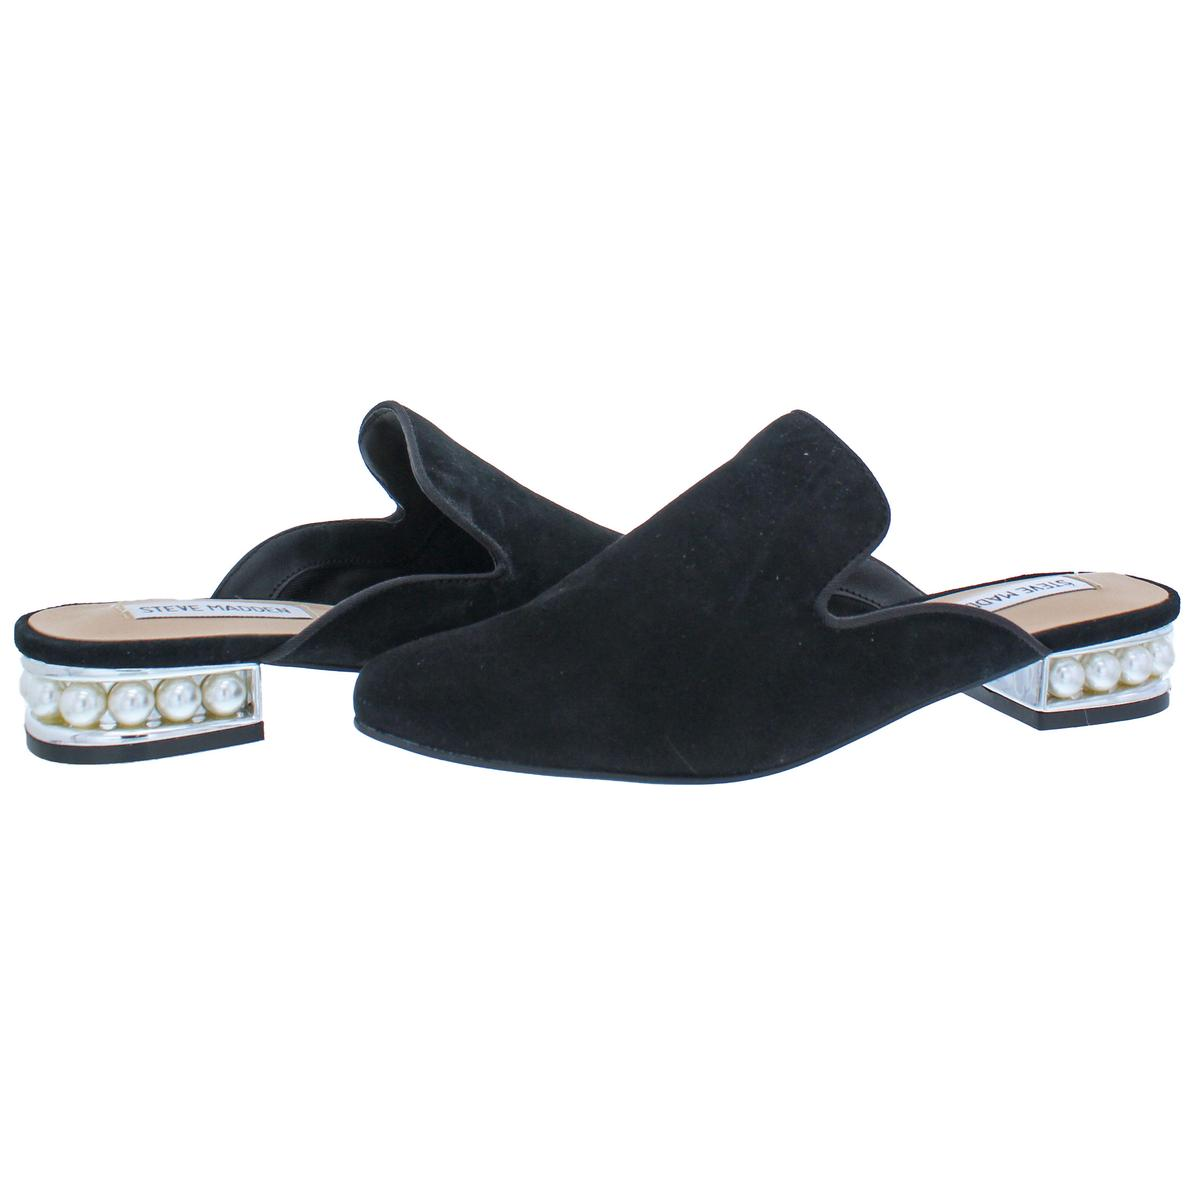 Steve-Madden-Womens-Sanderson-Round-Toe-Dress-Loafer-Mule-Shoes-BHFO-1456 thumbnail 5